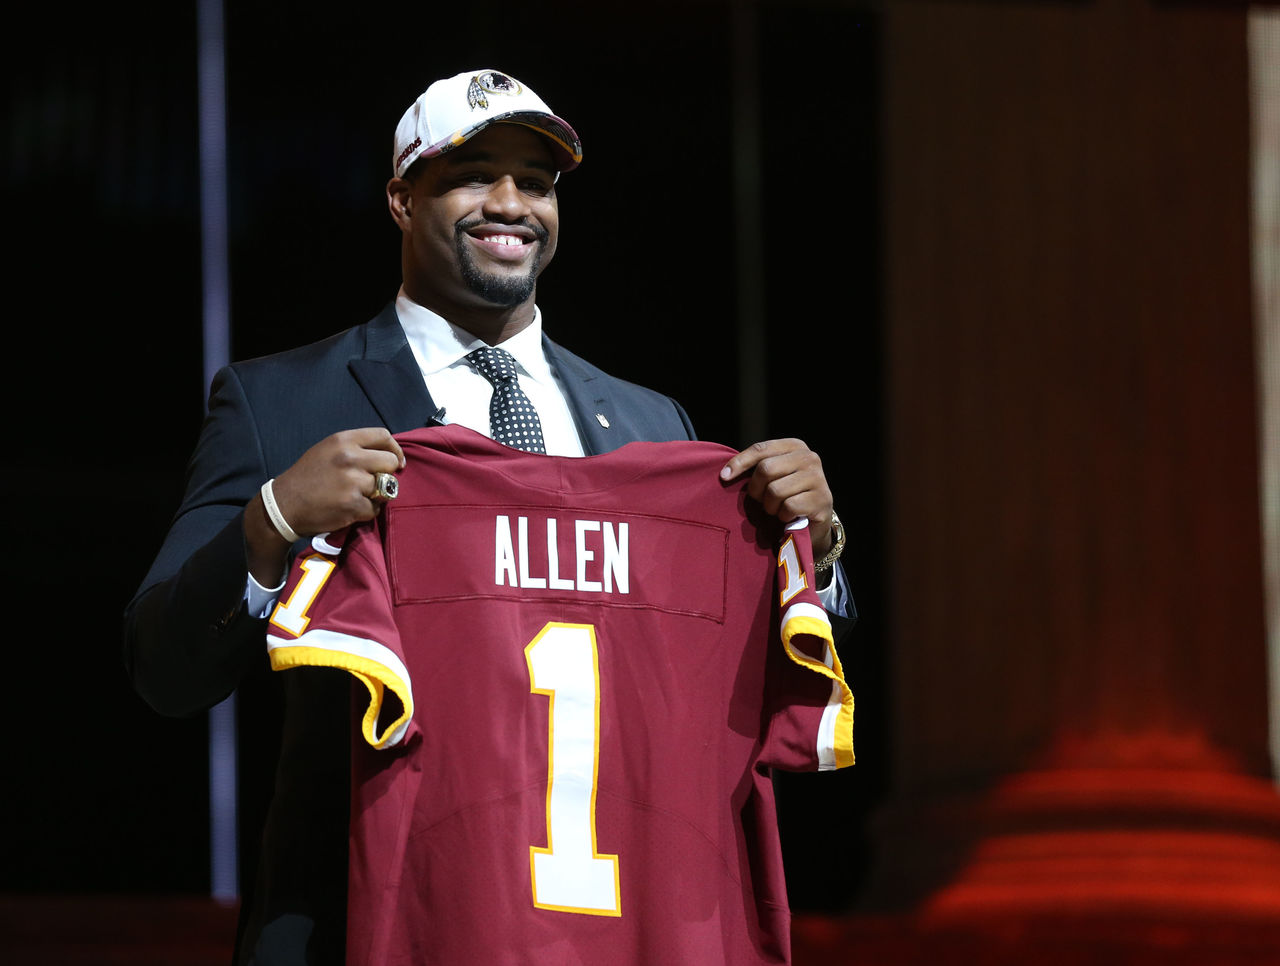 Report: Redskins' 1st-round pick Allen out for year with foot injury